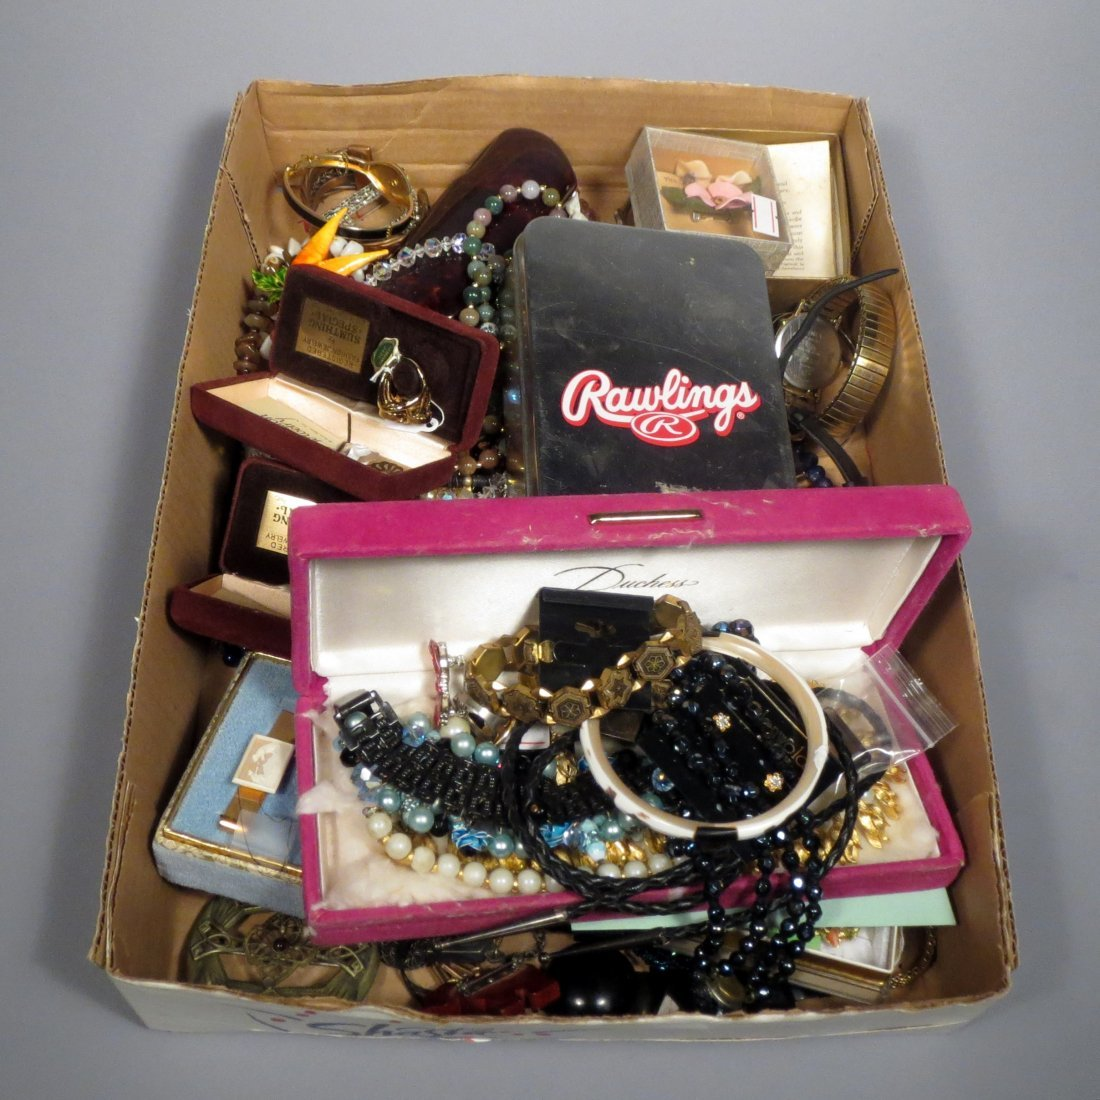 Box of Costume Jewelry and more surprises